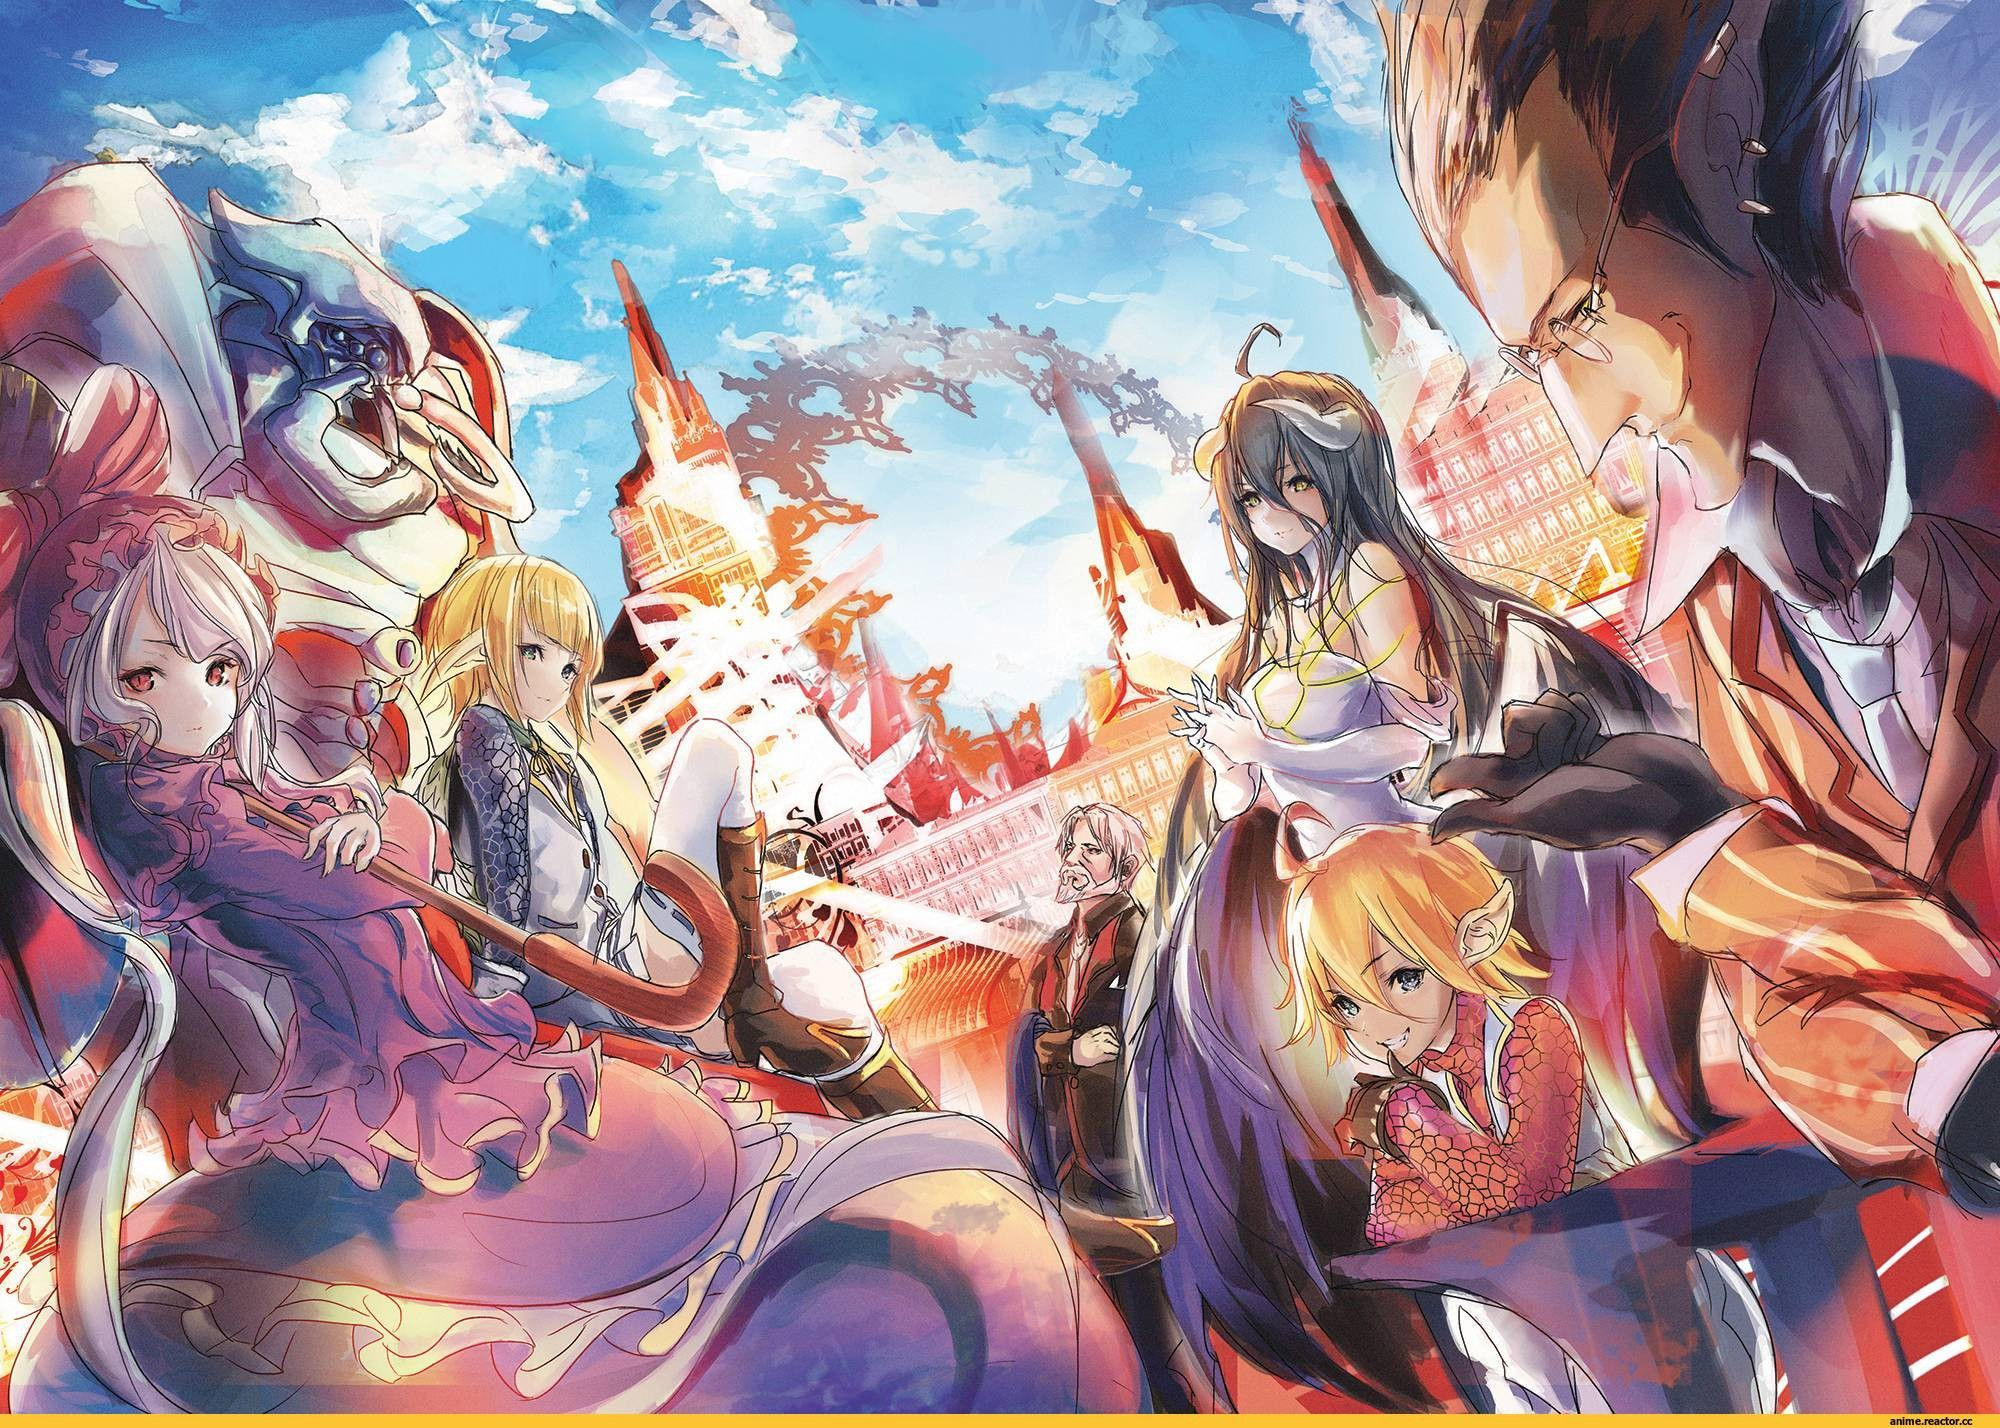 Overlord anime wallpaper download free stunning - Anime 1920x1080 ...